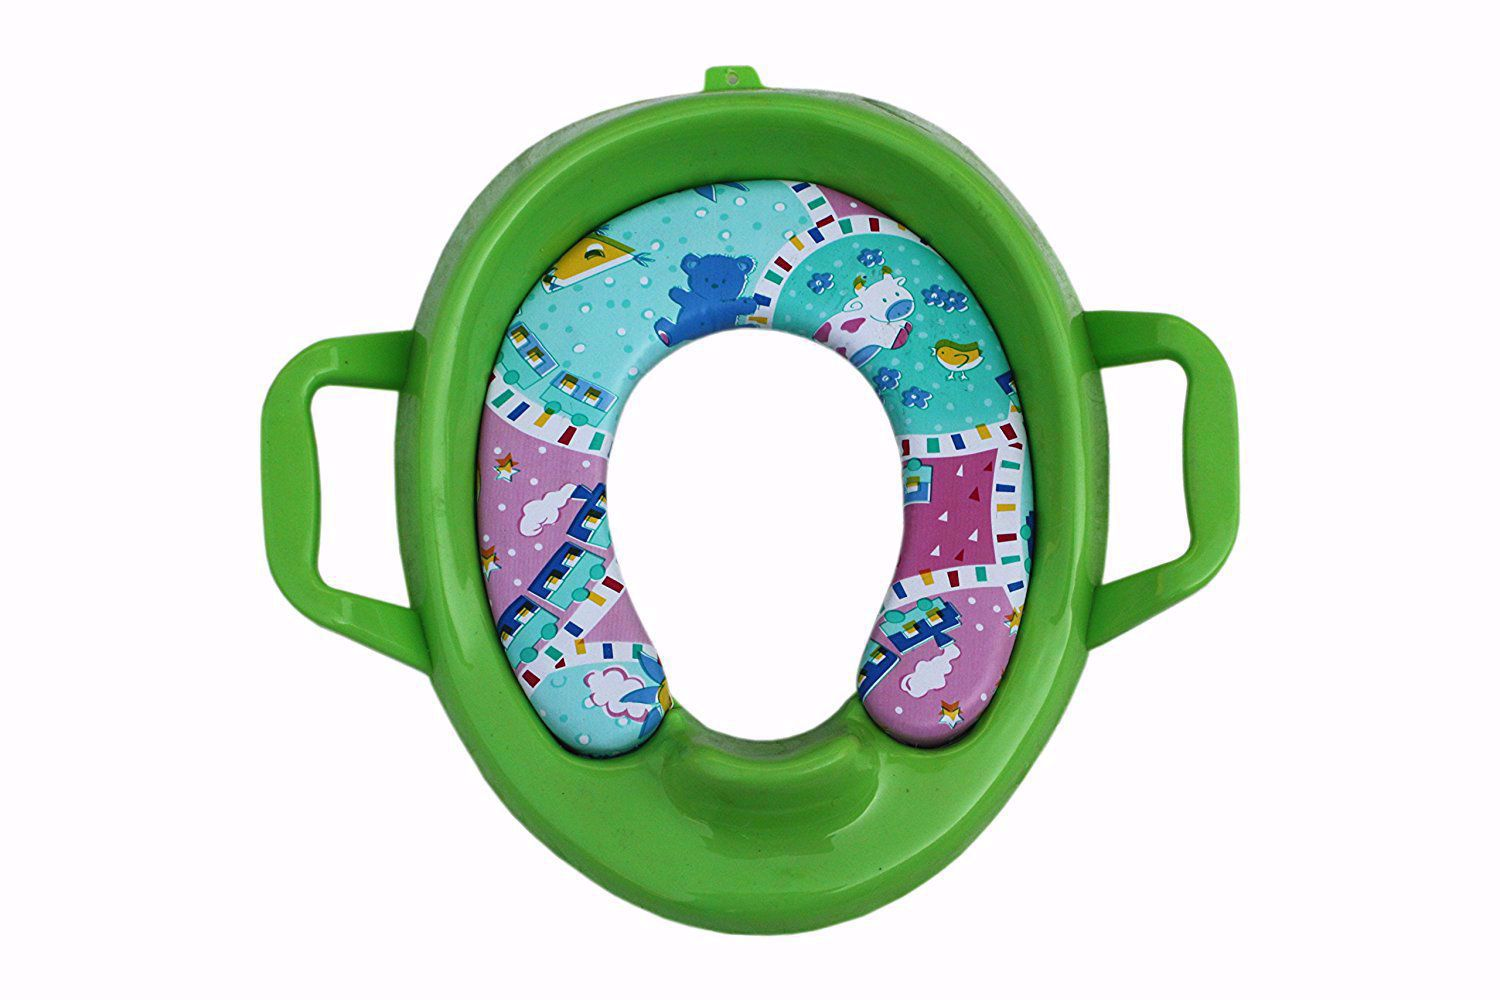 Baby Potty Trainer Green